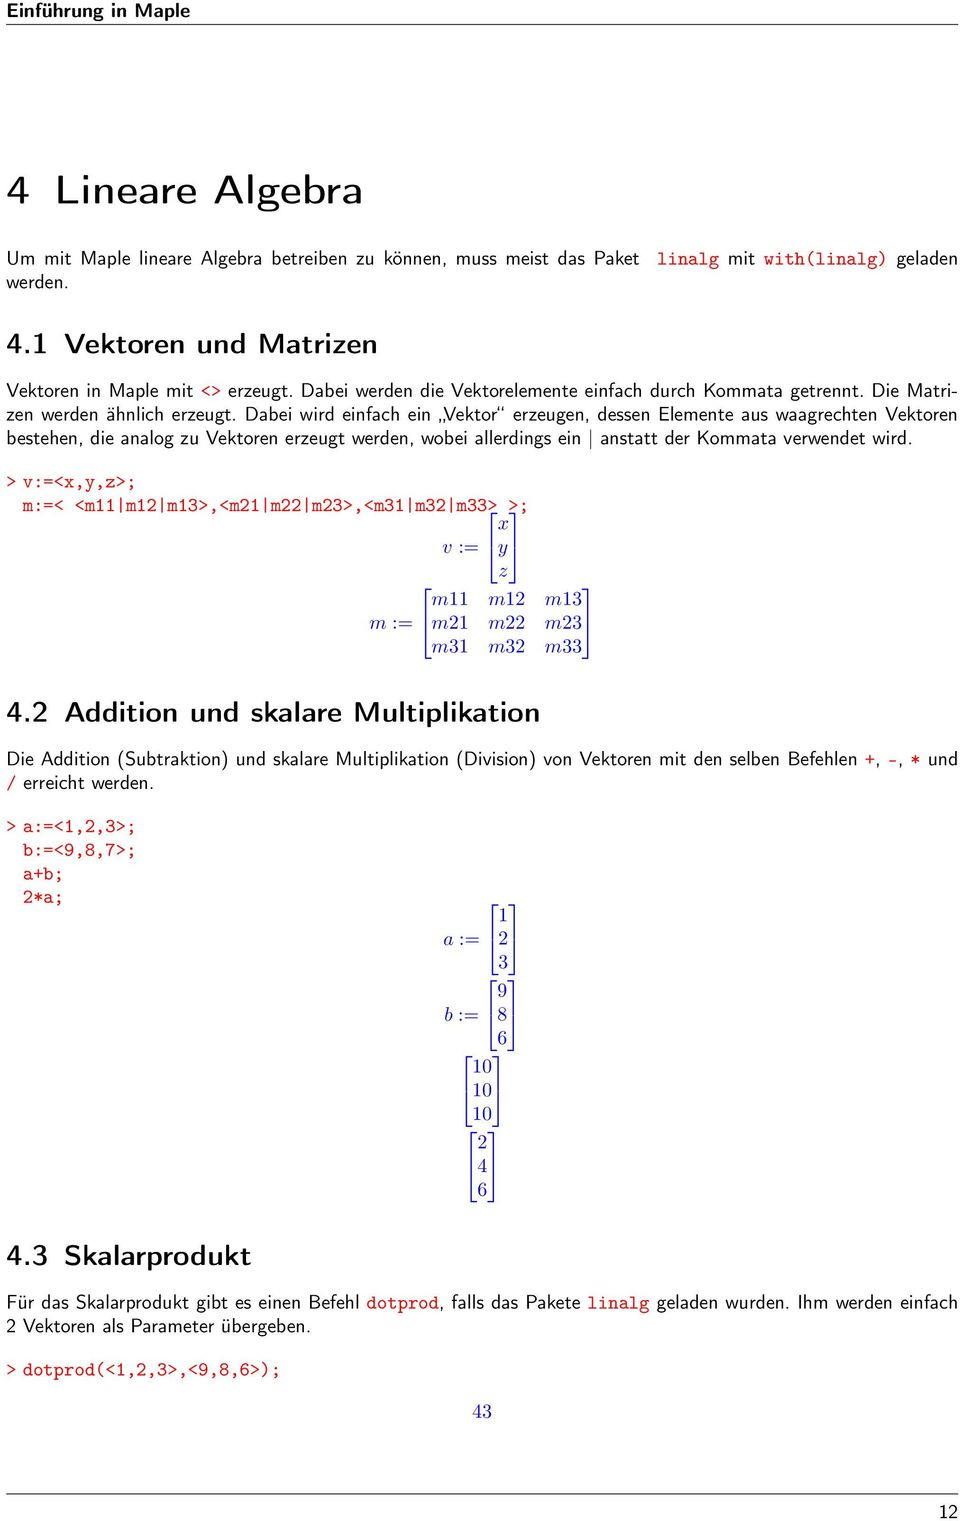 Contemporary Multiplikation Von Matrizen Arbeitsblatt Elaboration ...